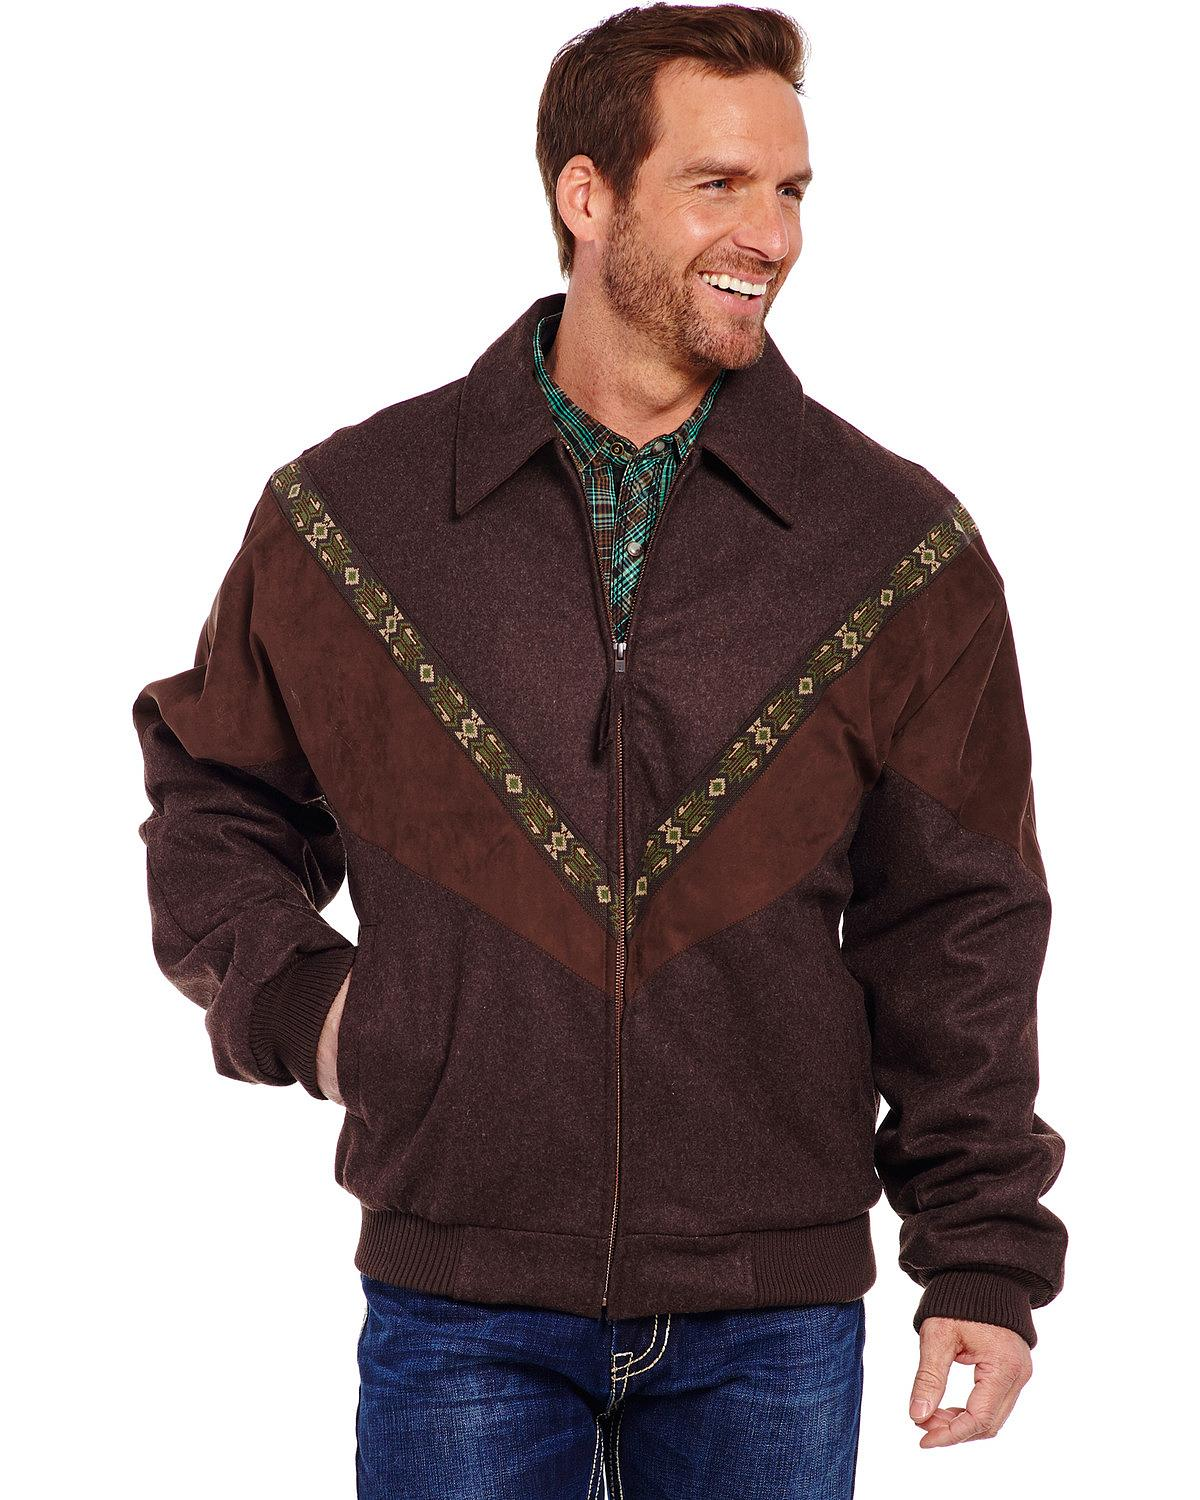 Cripple Creek Men's Aztec Trim Wool Jacket Cr39866-34 by Mens Wool Coats